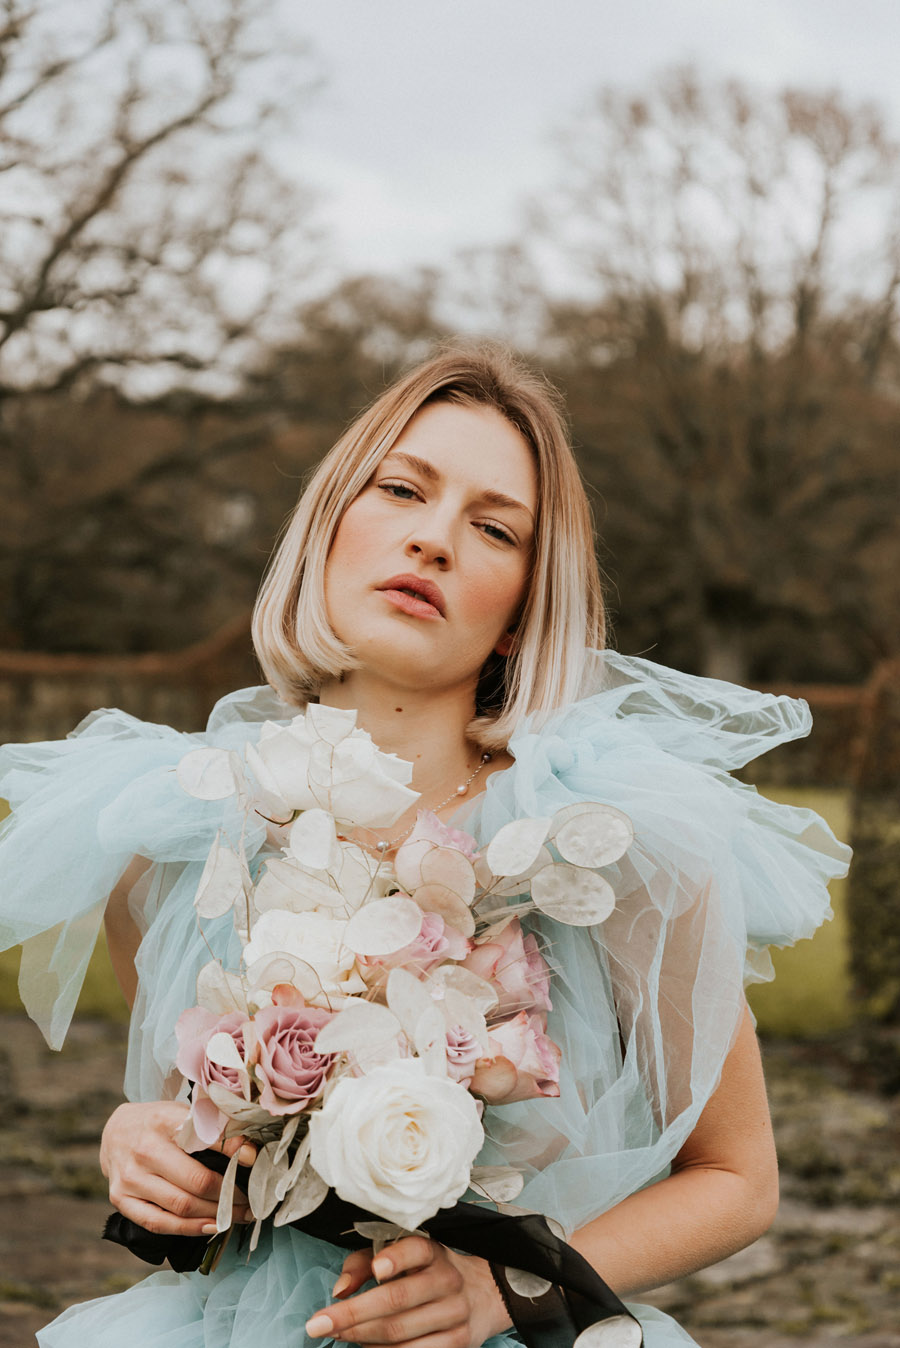 Midelney Manor – Winter pastel romance with a hint of gothic, image credit Hannah Barnes Photography (2)